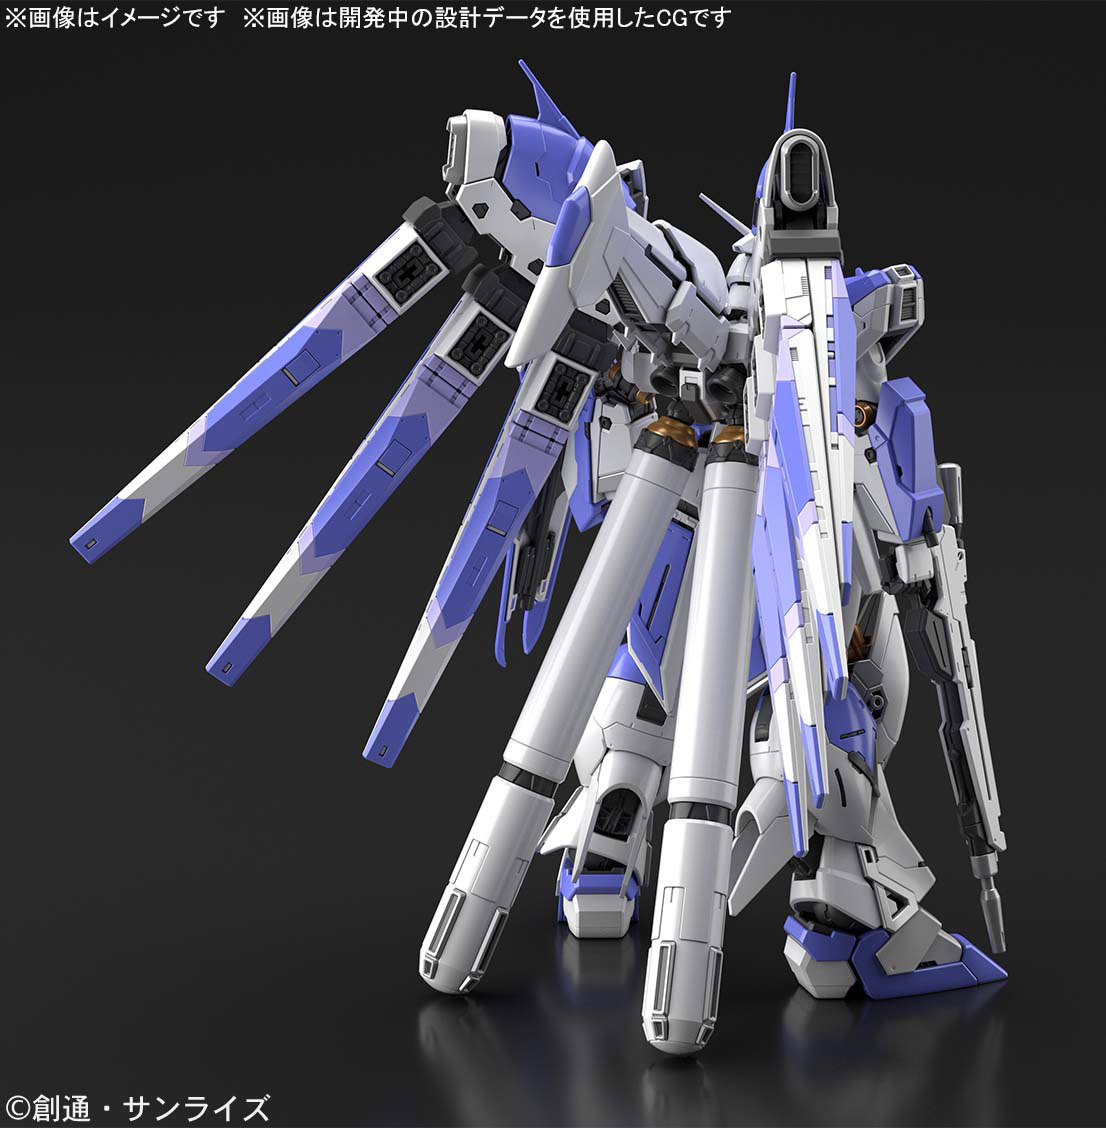 RG 1/144 hi-nu Gundam - Release Info, Box art and Official Images - Gundam  Kits Collection News and Reviews